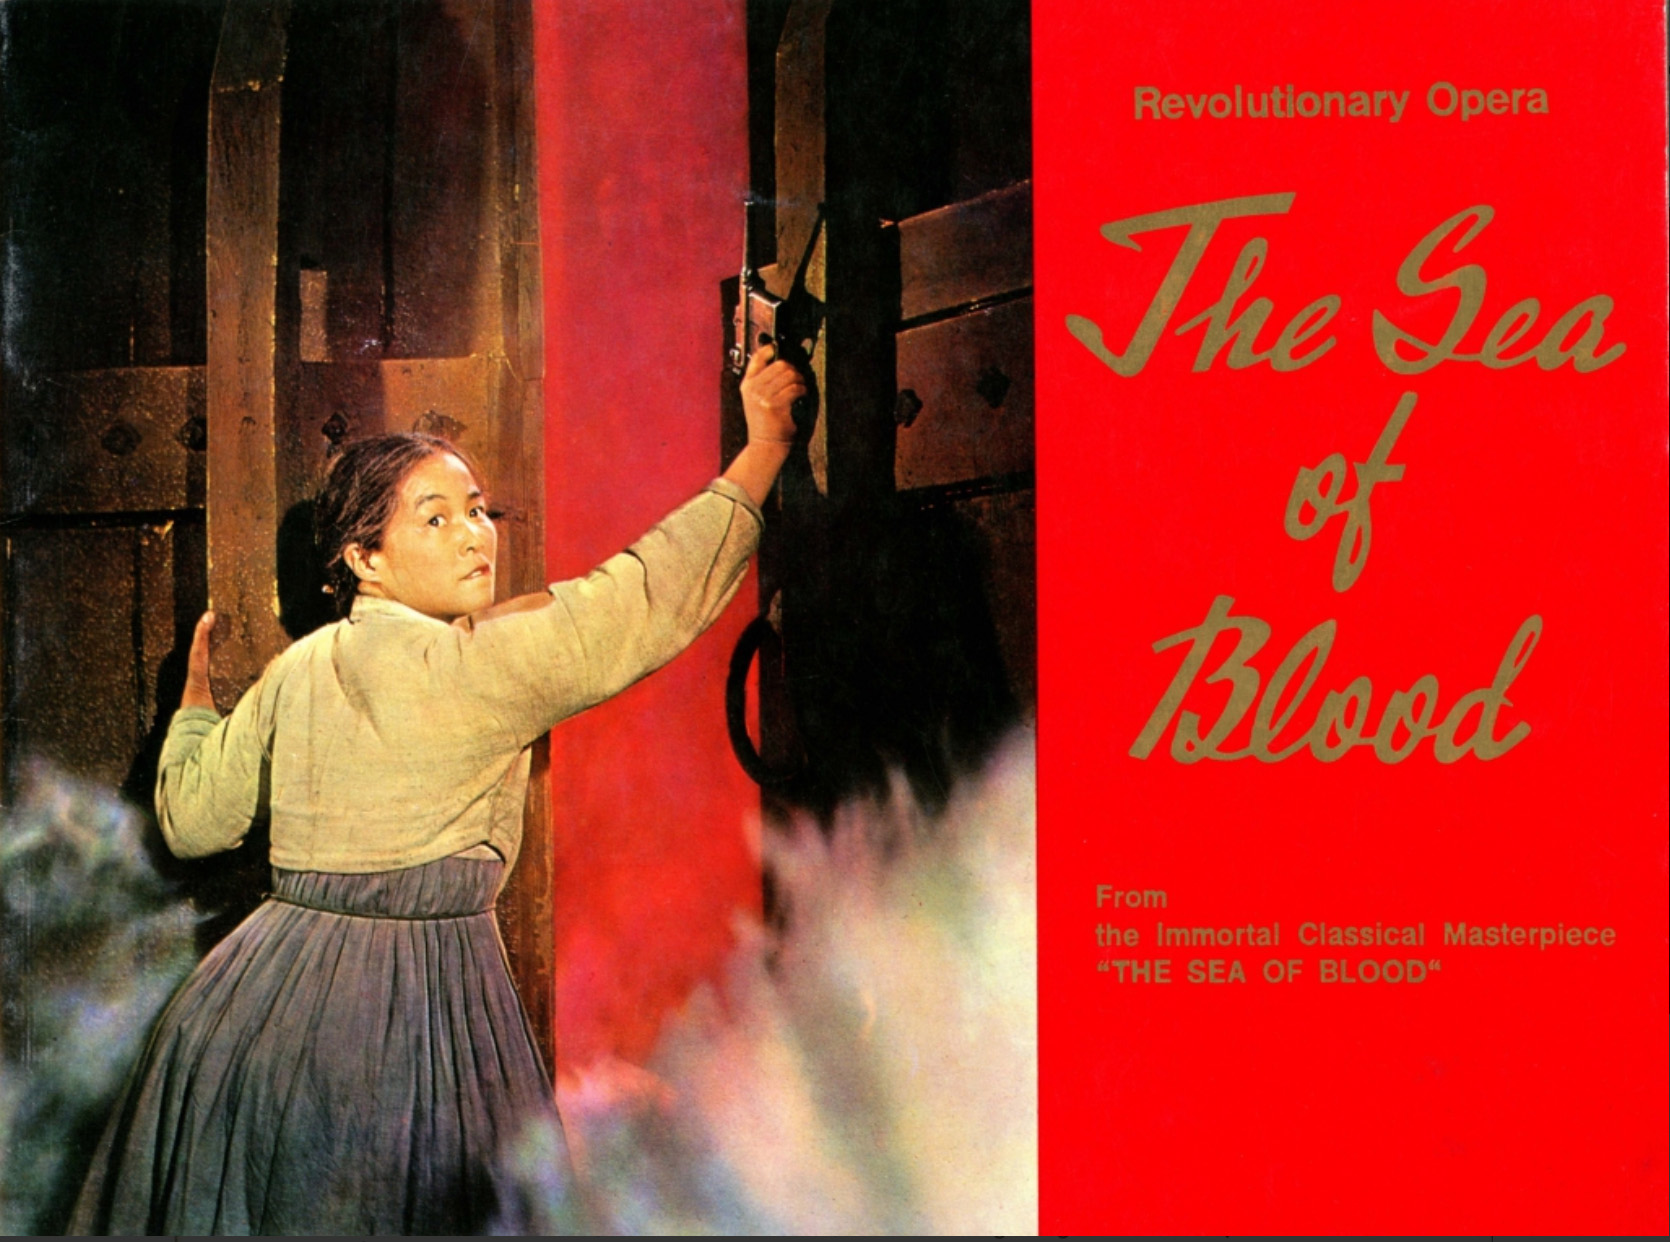 The Sea of Blood